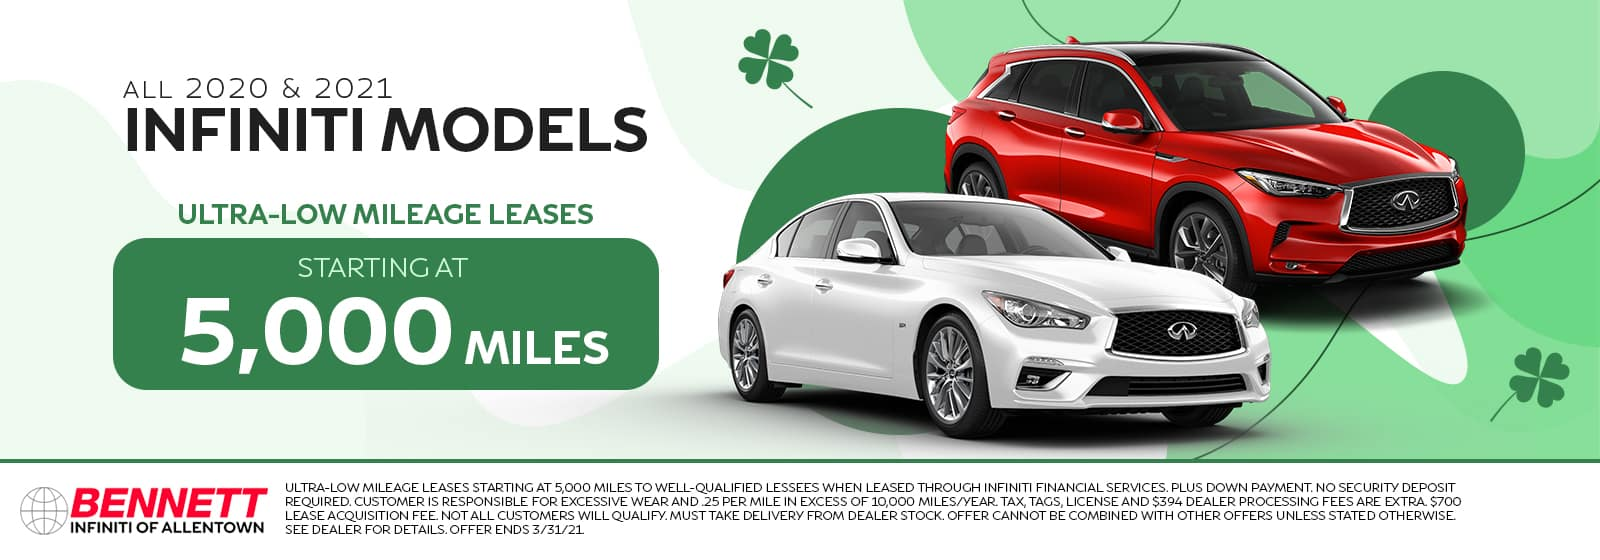 All 2020 $ 2021 INFINITI Models - Ultra-low mileage leases starting at 5,000 miles.